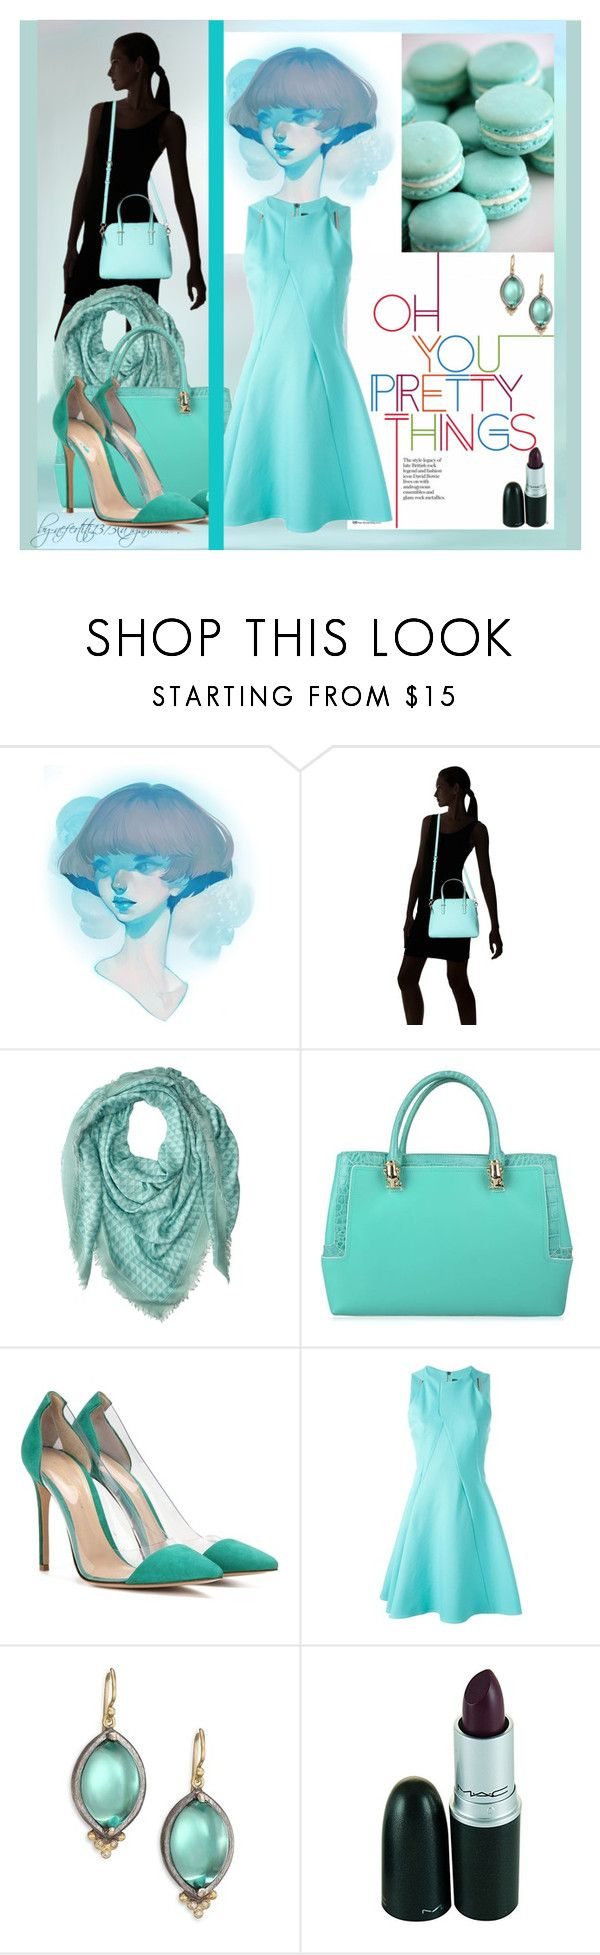 """""""Burning Inside The music of tears"""" by nefertiti1373 on Polyvore featuring Kate Spade, Proenza Schouler, Roberto Cavalli, Gianvito Rossi, Roland Mouret and Rene Escobar"""